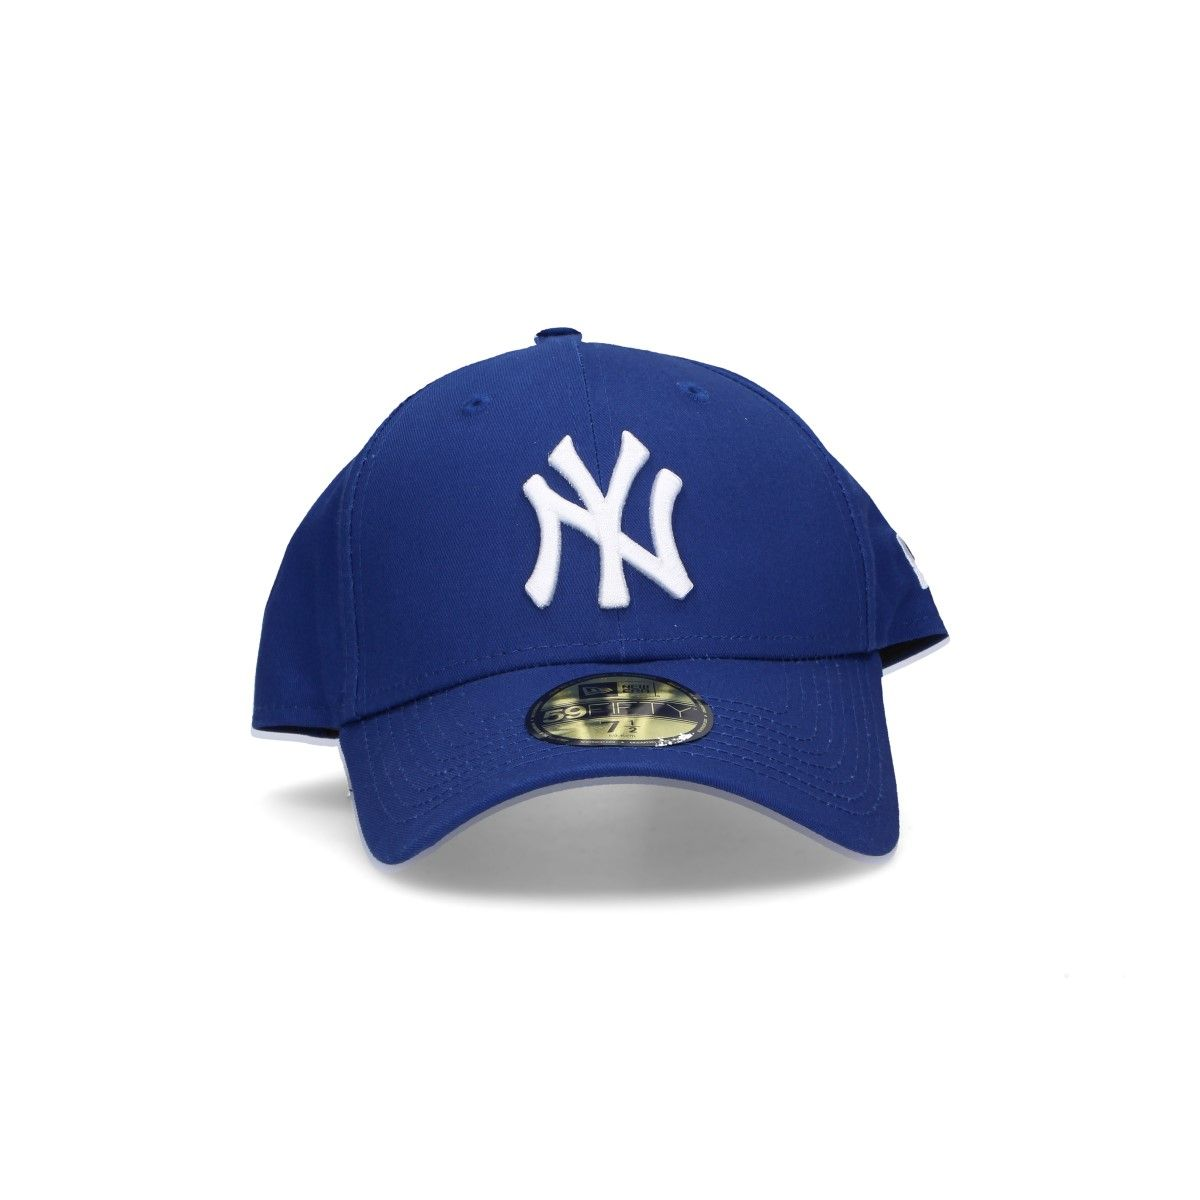 New Era Blue Cotton Hat